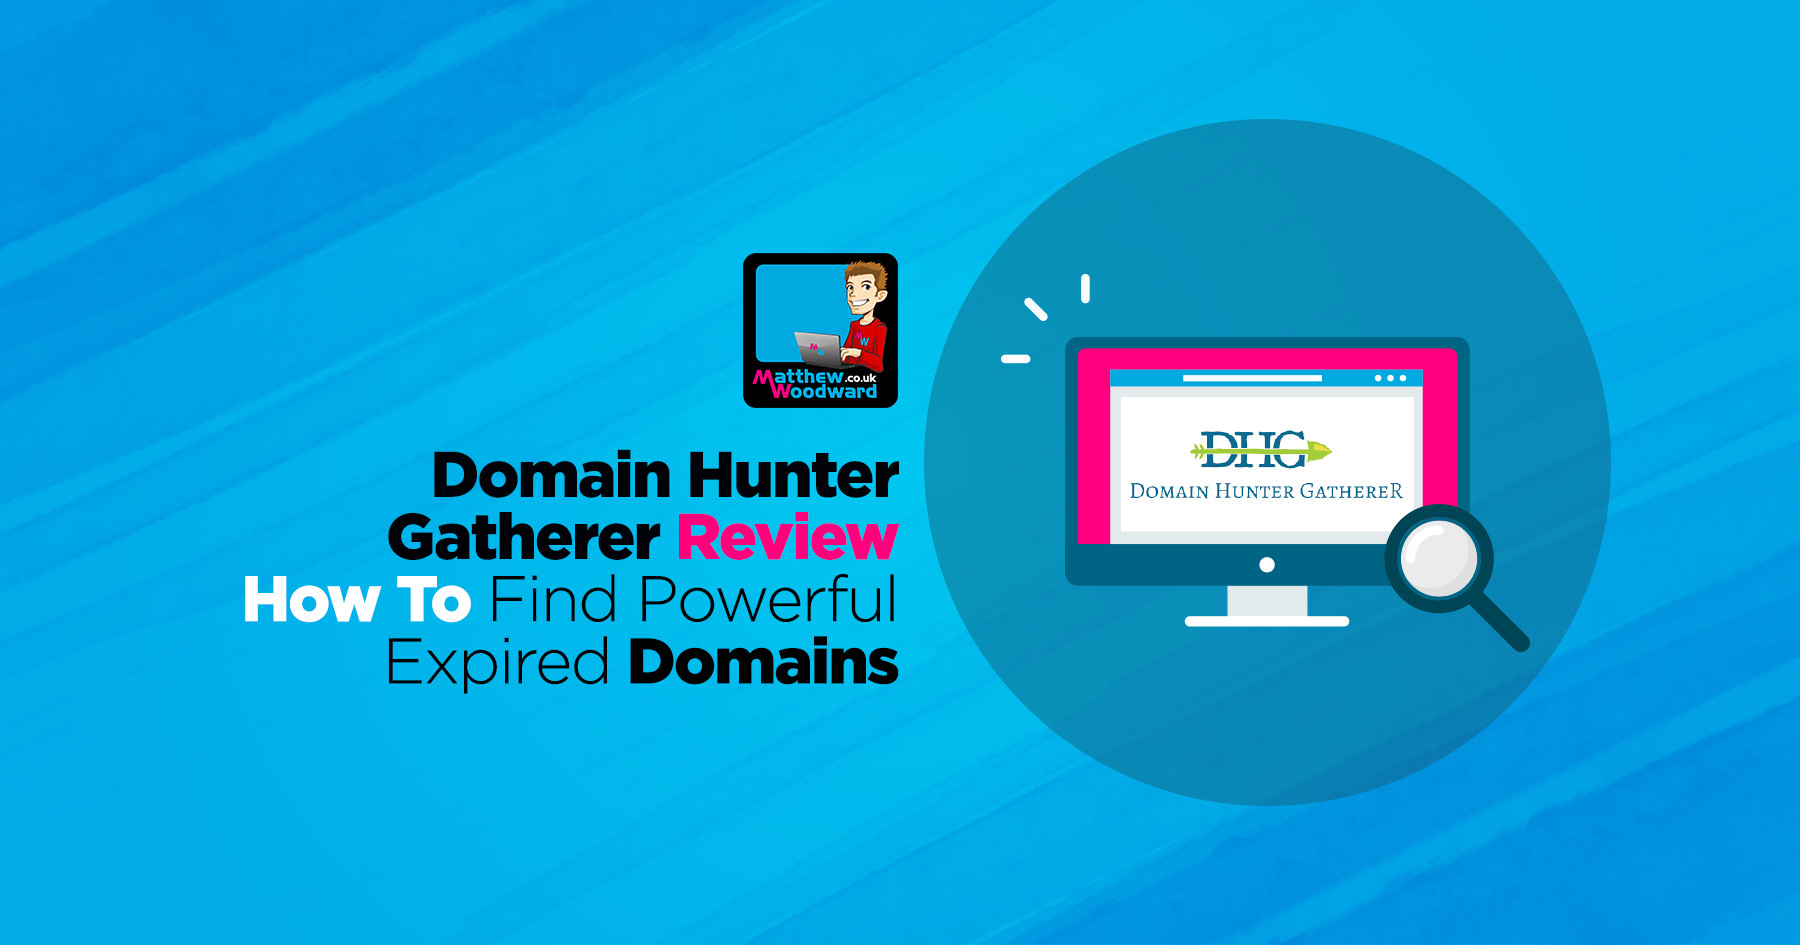 Domain Hunter Gatherer Review - What You Need To Know!